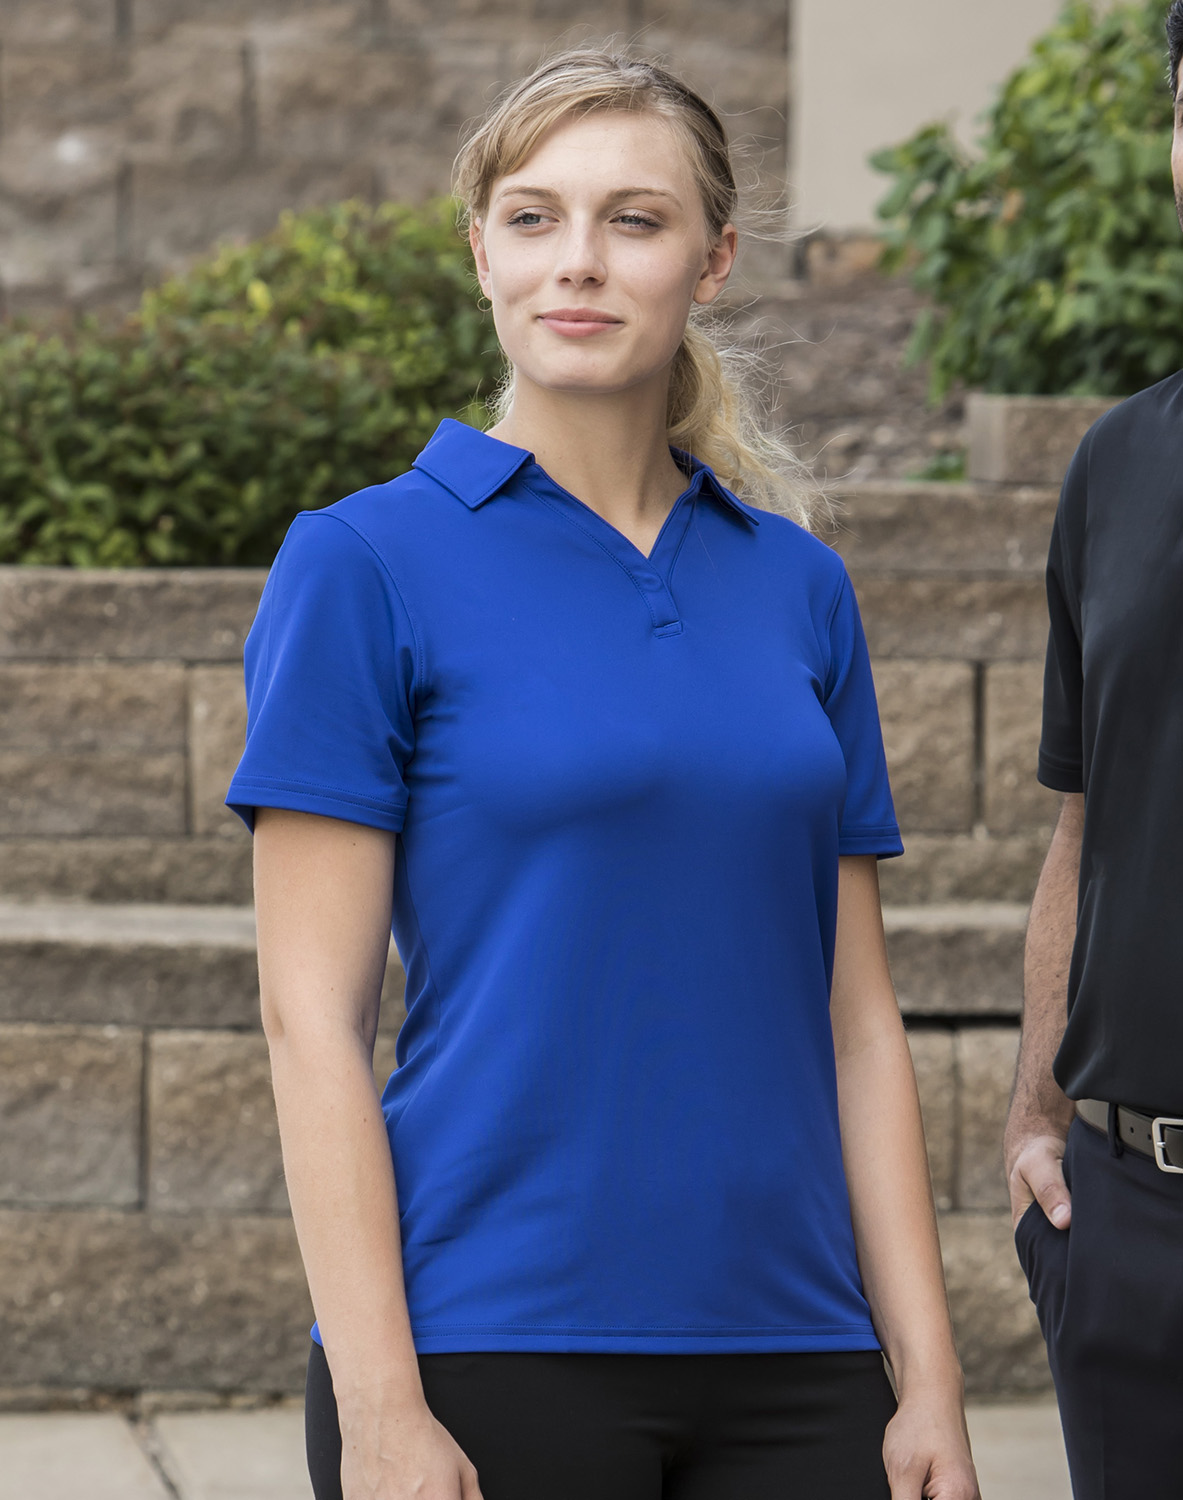 f967072467a6 1261606 Ladies  Corp Performance Polo custom embroidered or printed ...